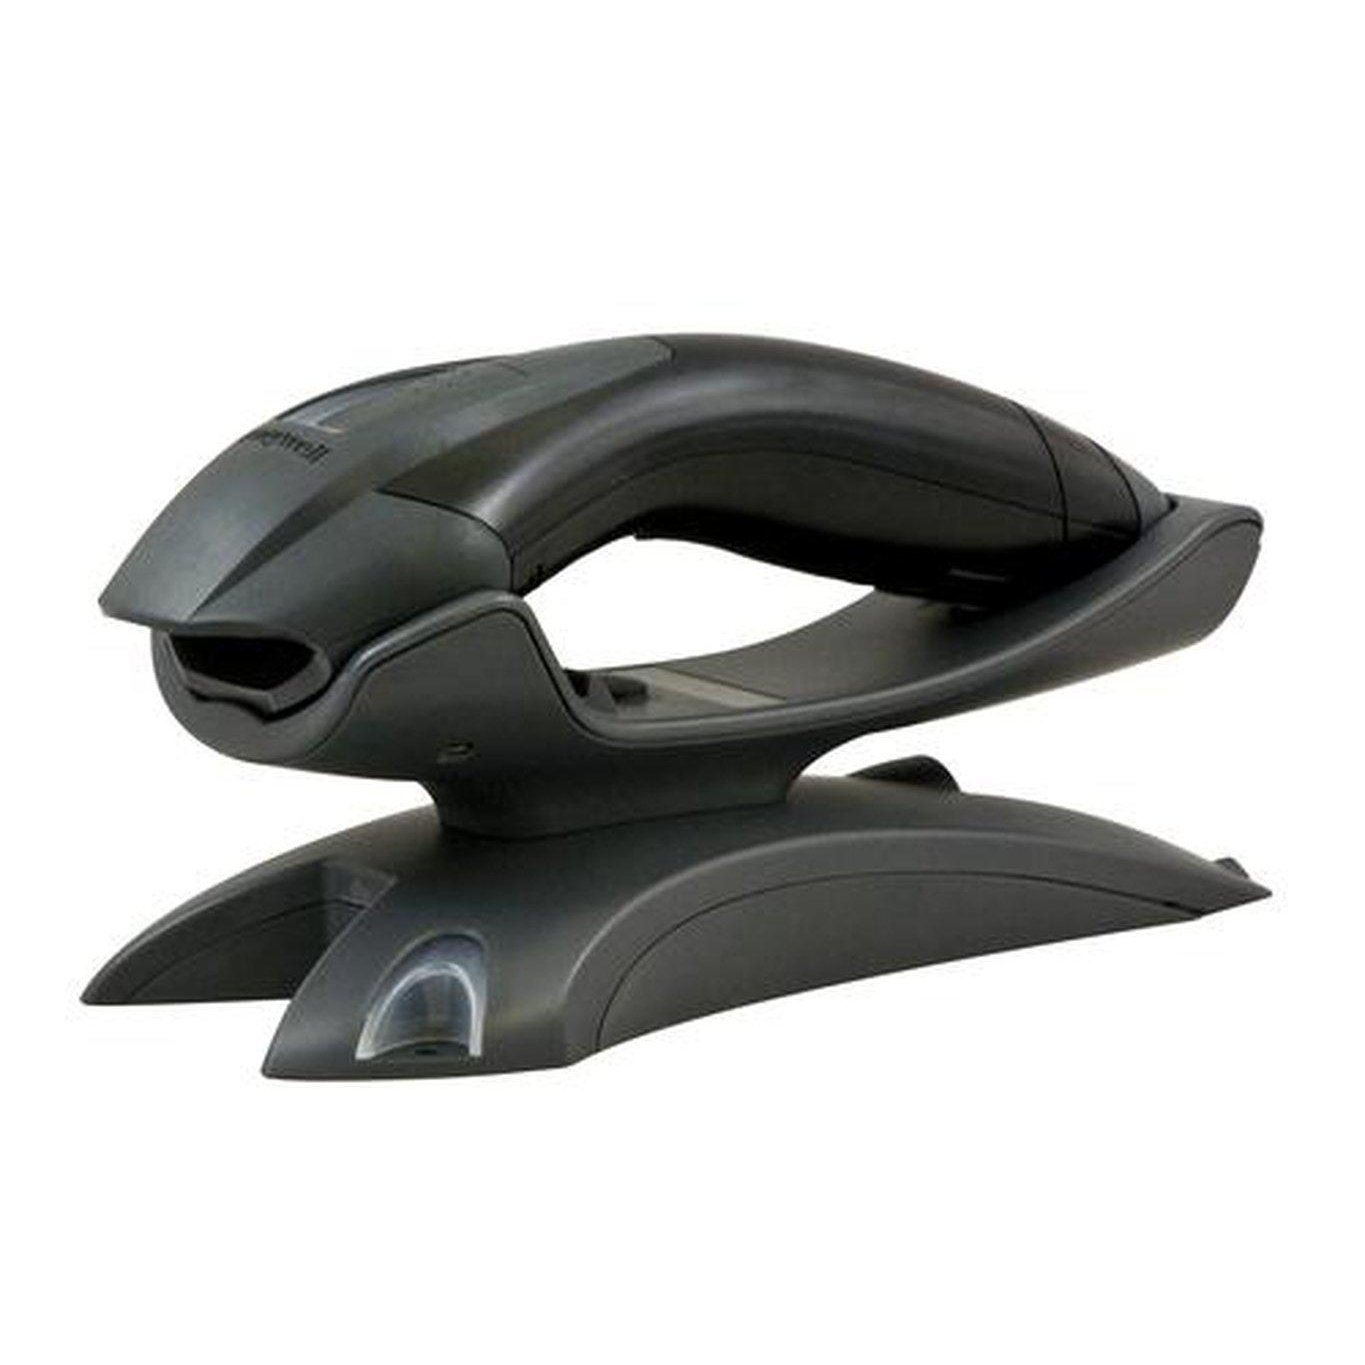 Honeywell Voyager 1202G 1D Wireless Barcode Scanner USB, Black | 1202G-2USB-5 Barcode Scanner Honeywell